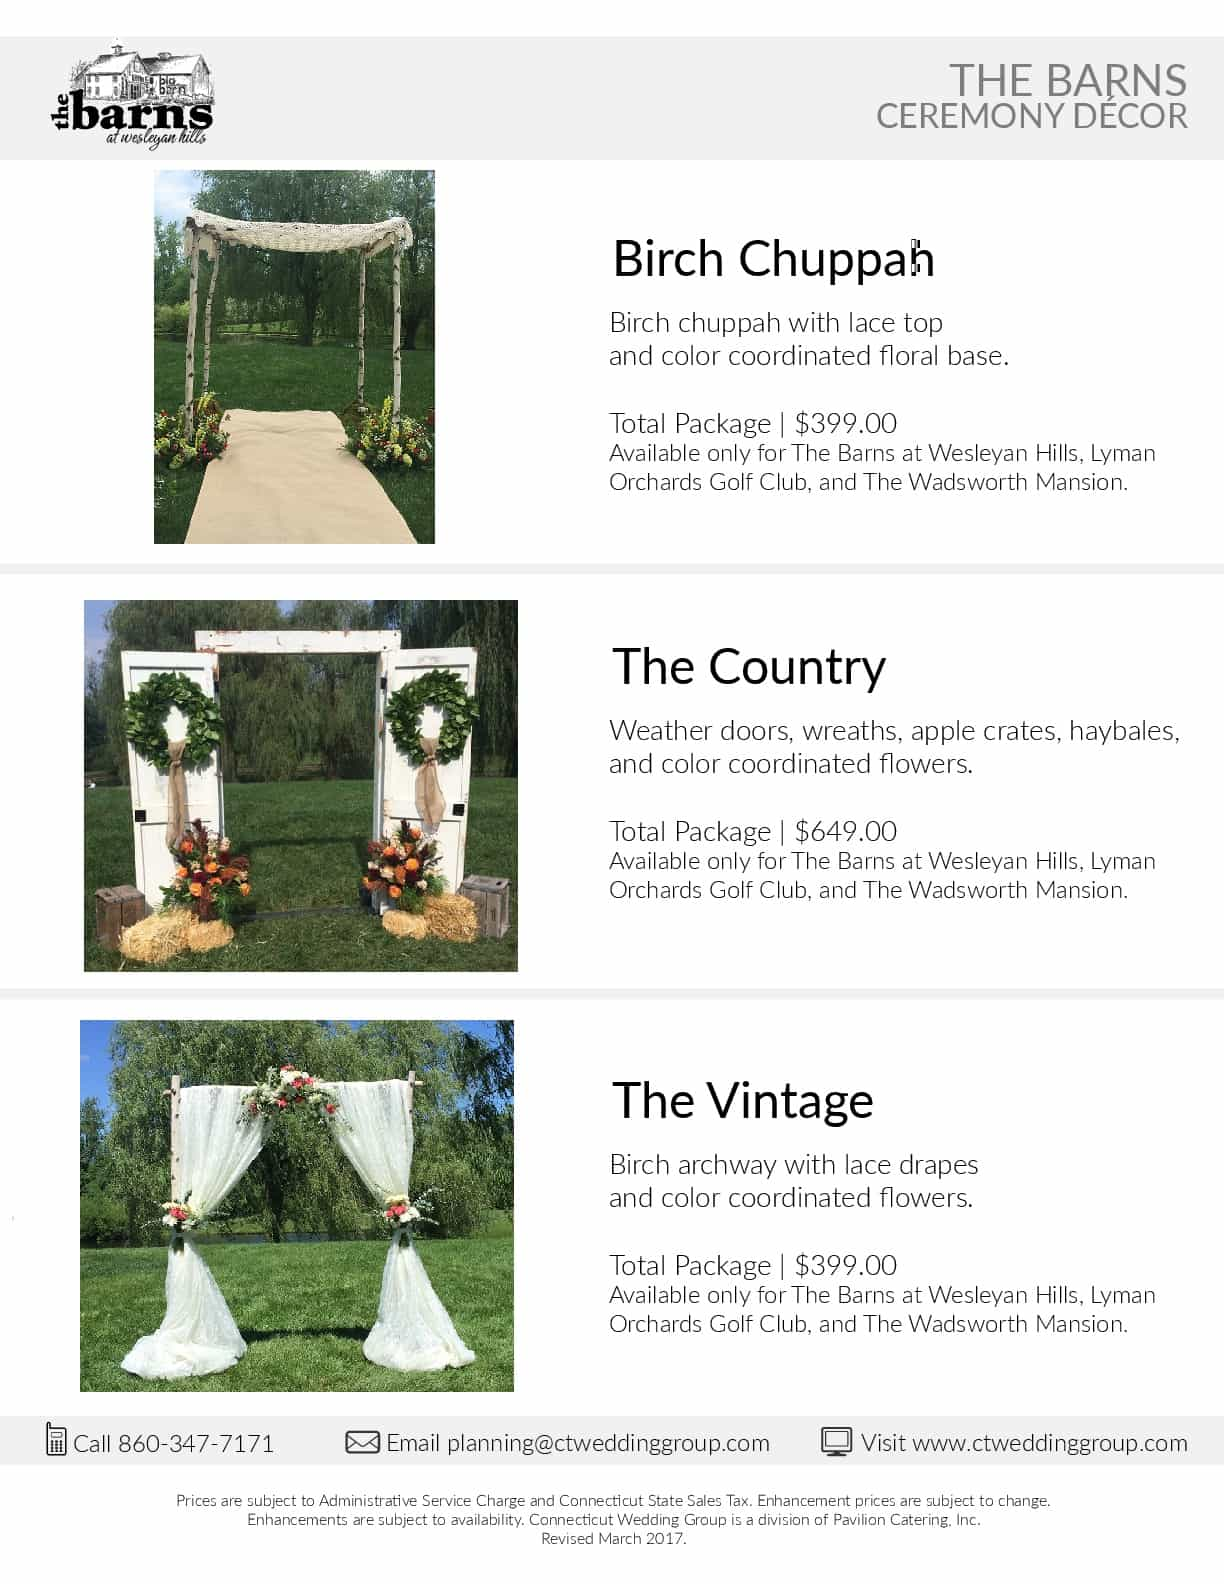 117_15315_Barns-at-Wesleyan-Hills-Ceremony-Decor-Packages_2017-002